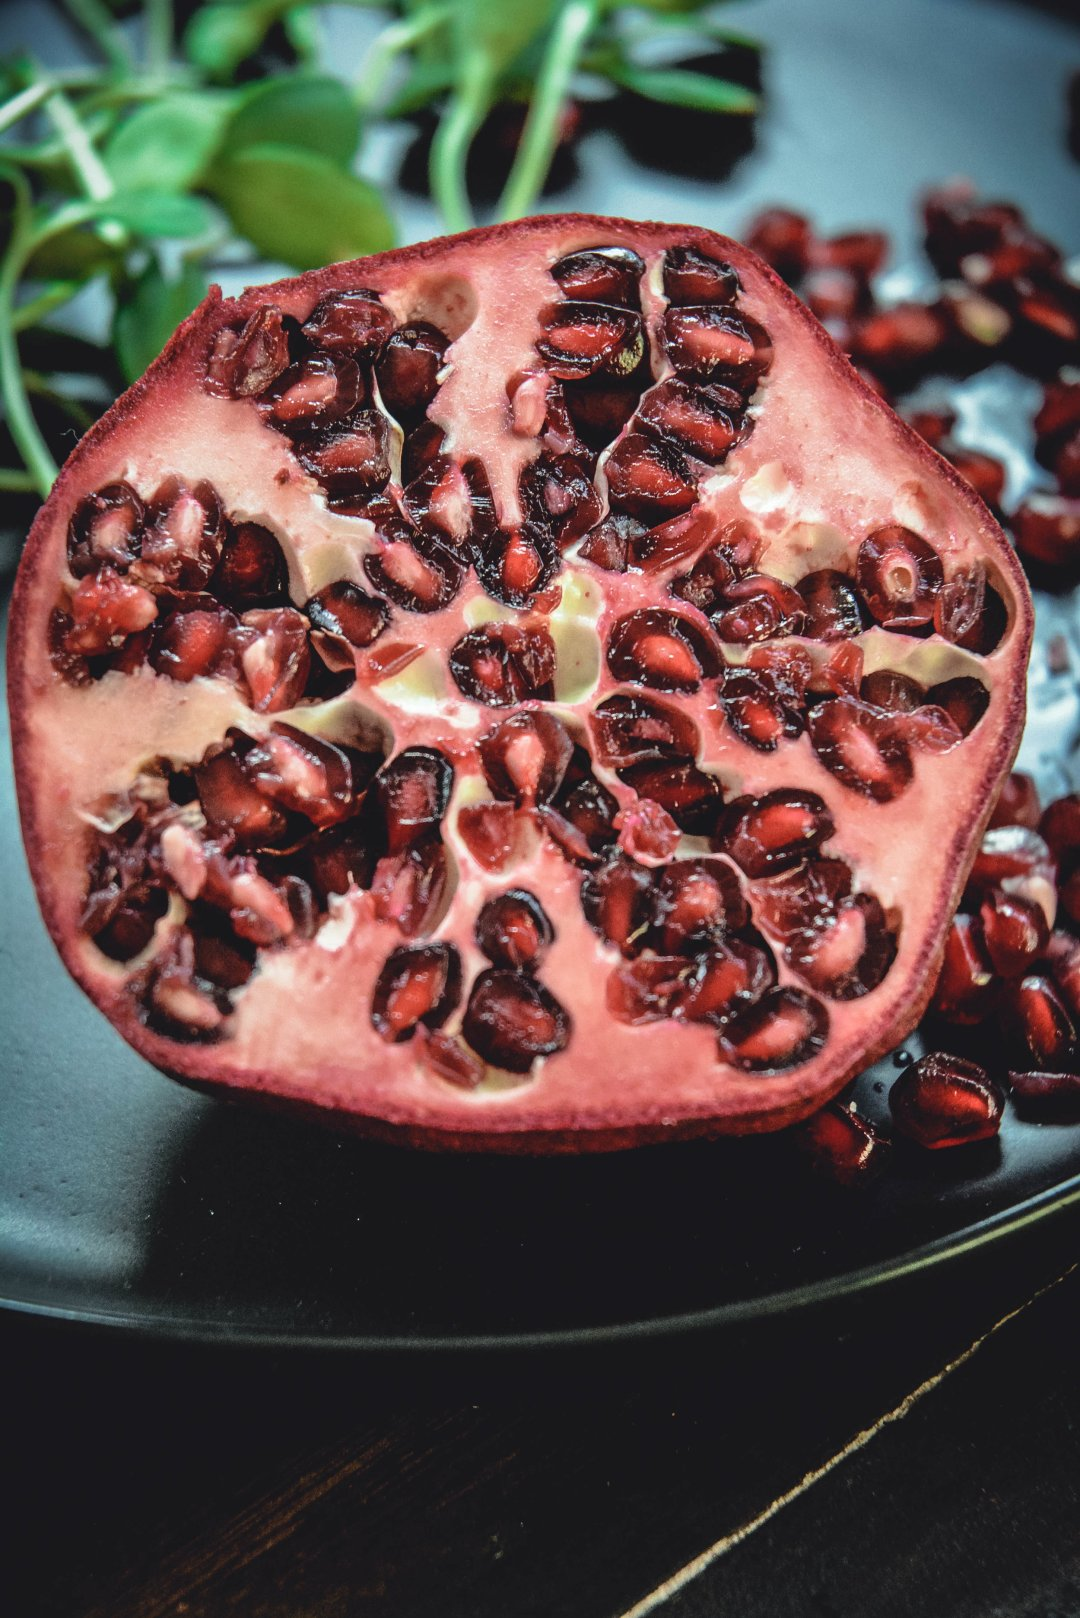 pomegranate, greens and seeds